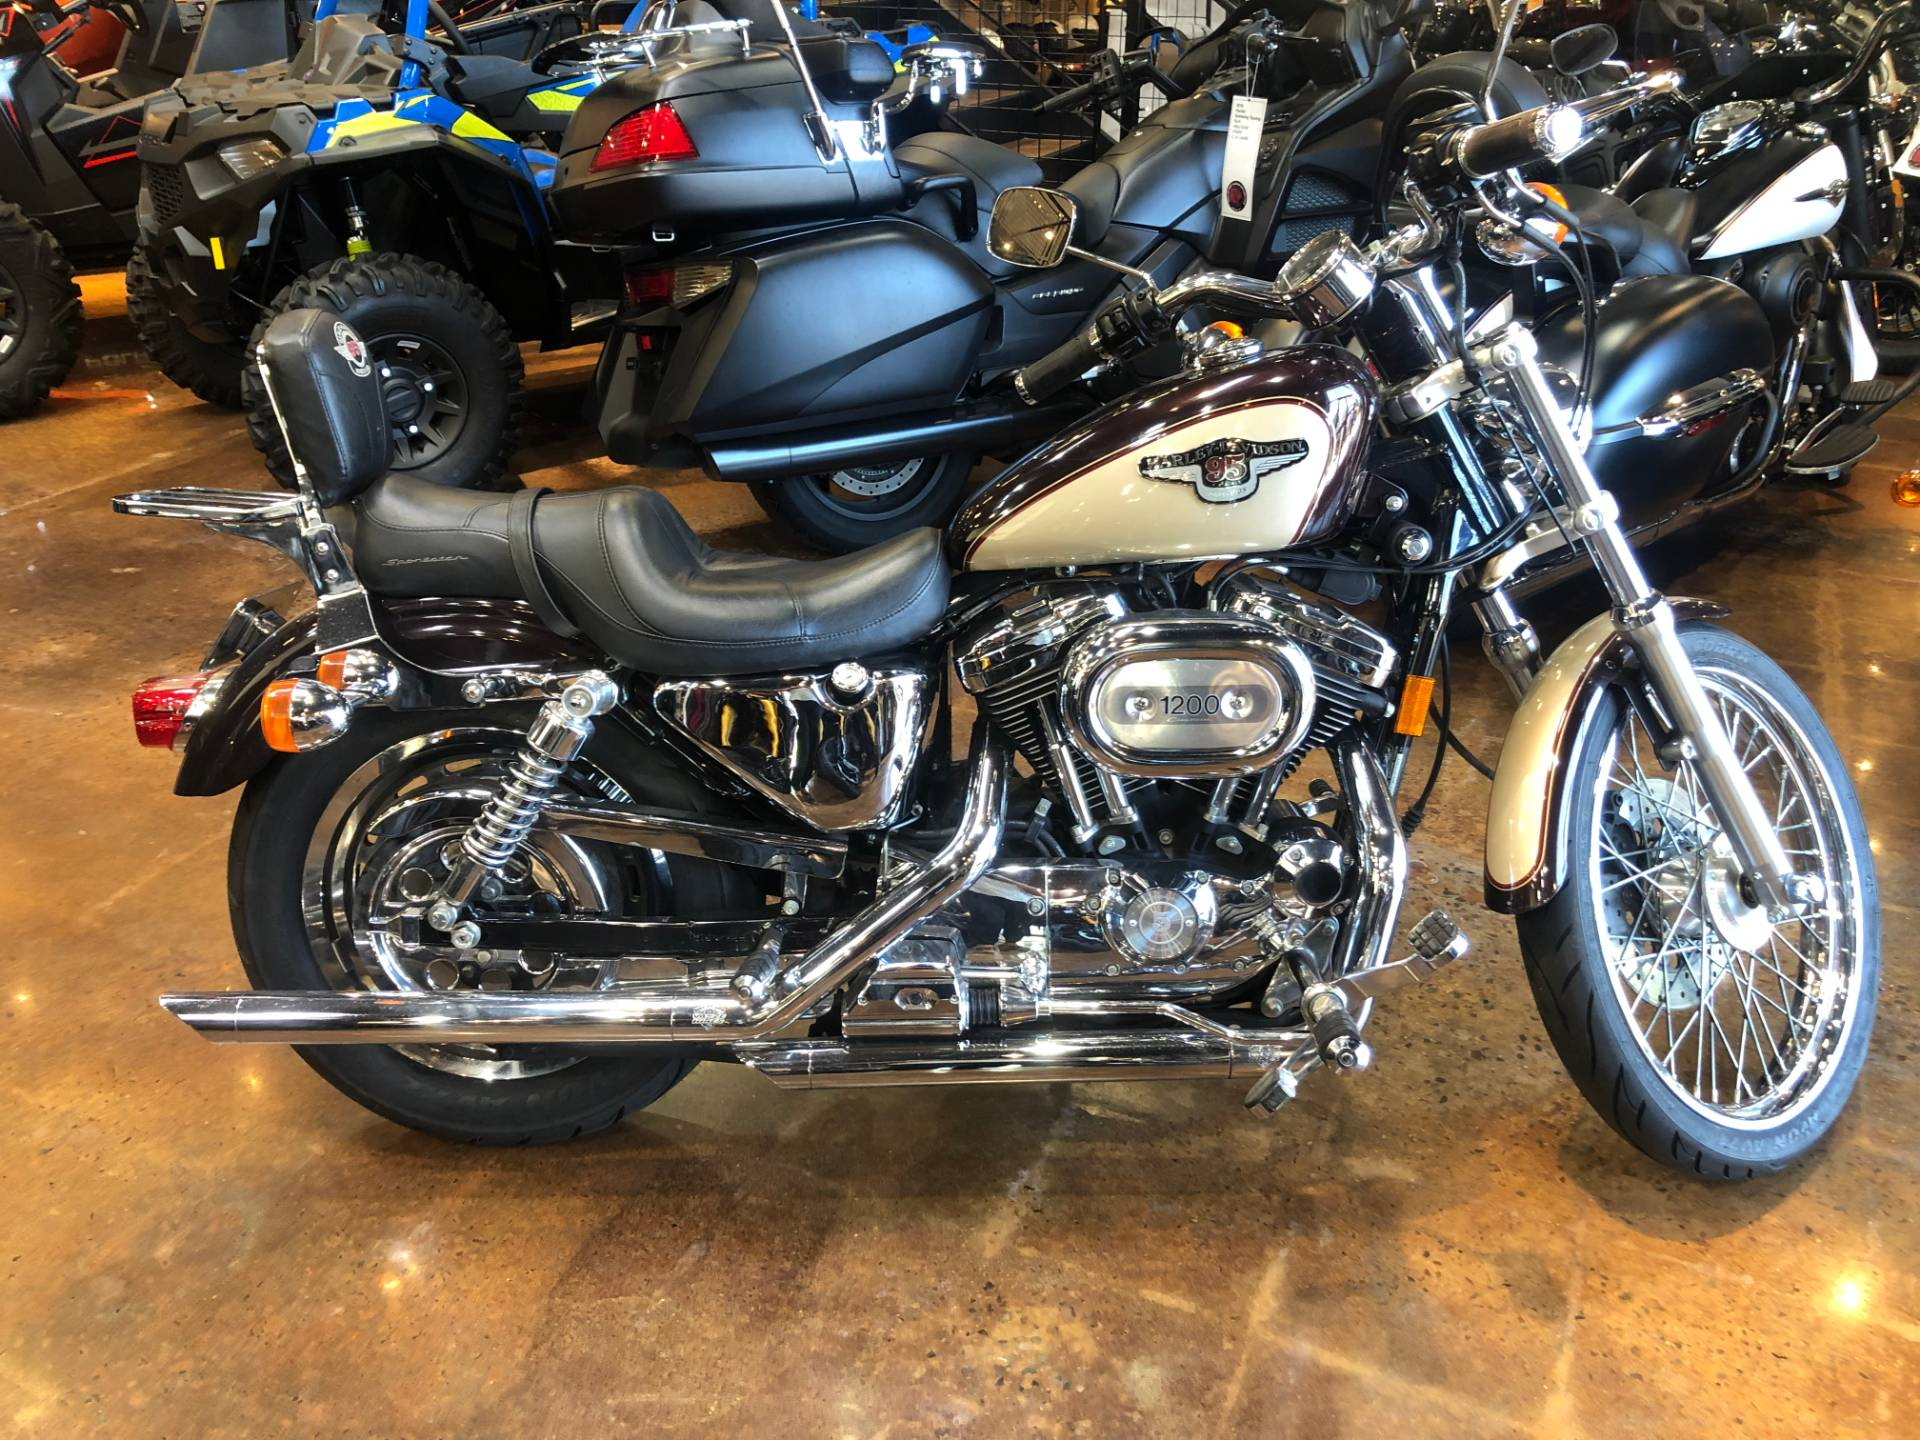 1998 Harley Davidson Sportster 95th Anniversary Edition in Lebanon, New Jersey - Photo 1